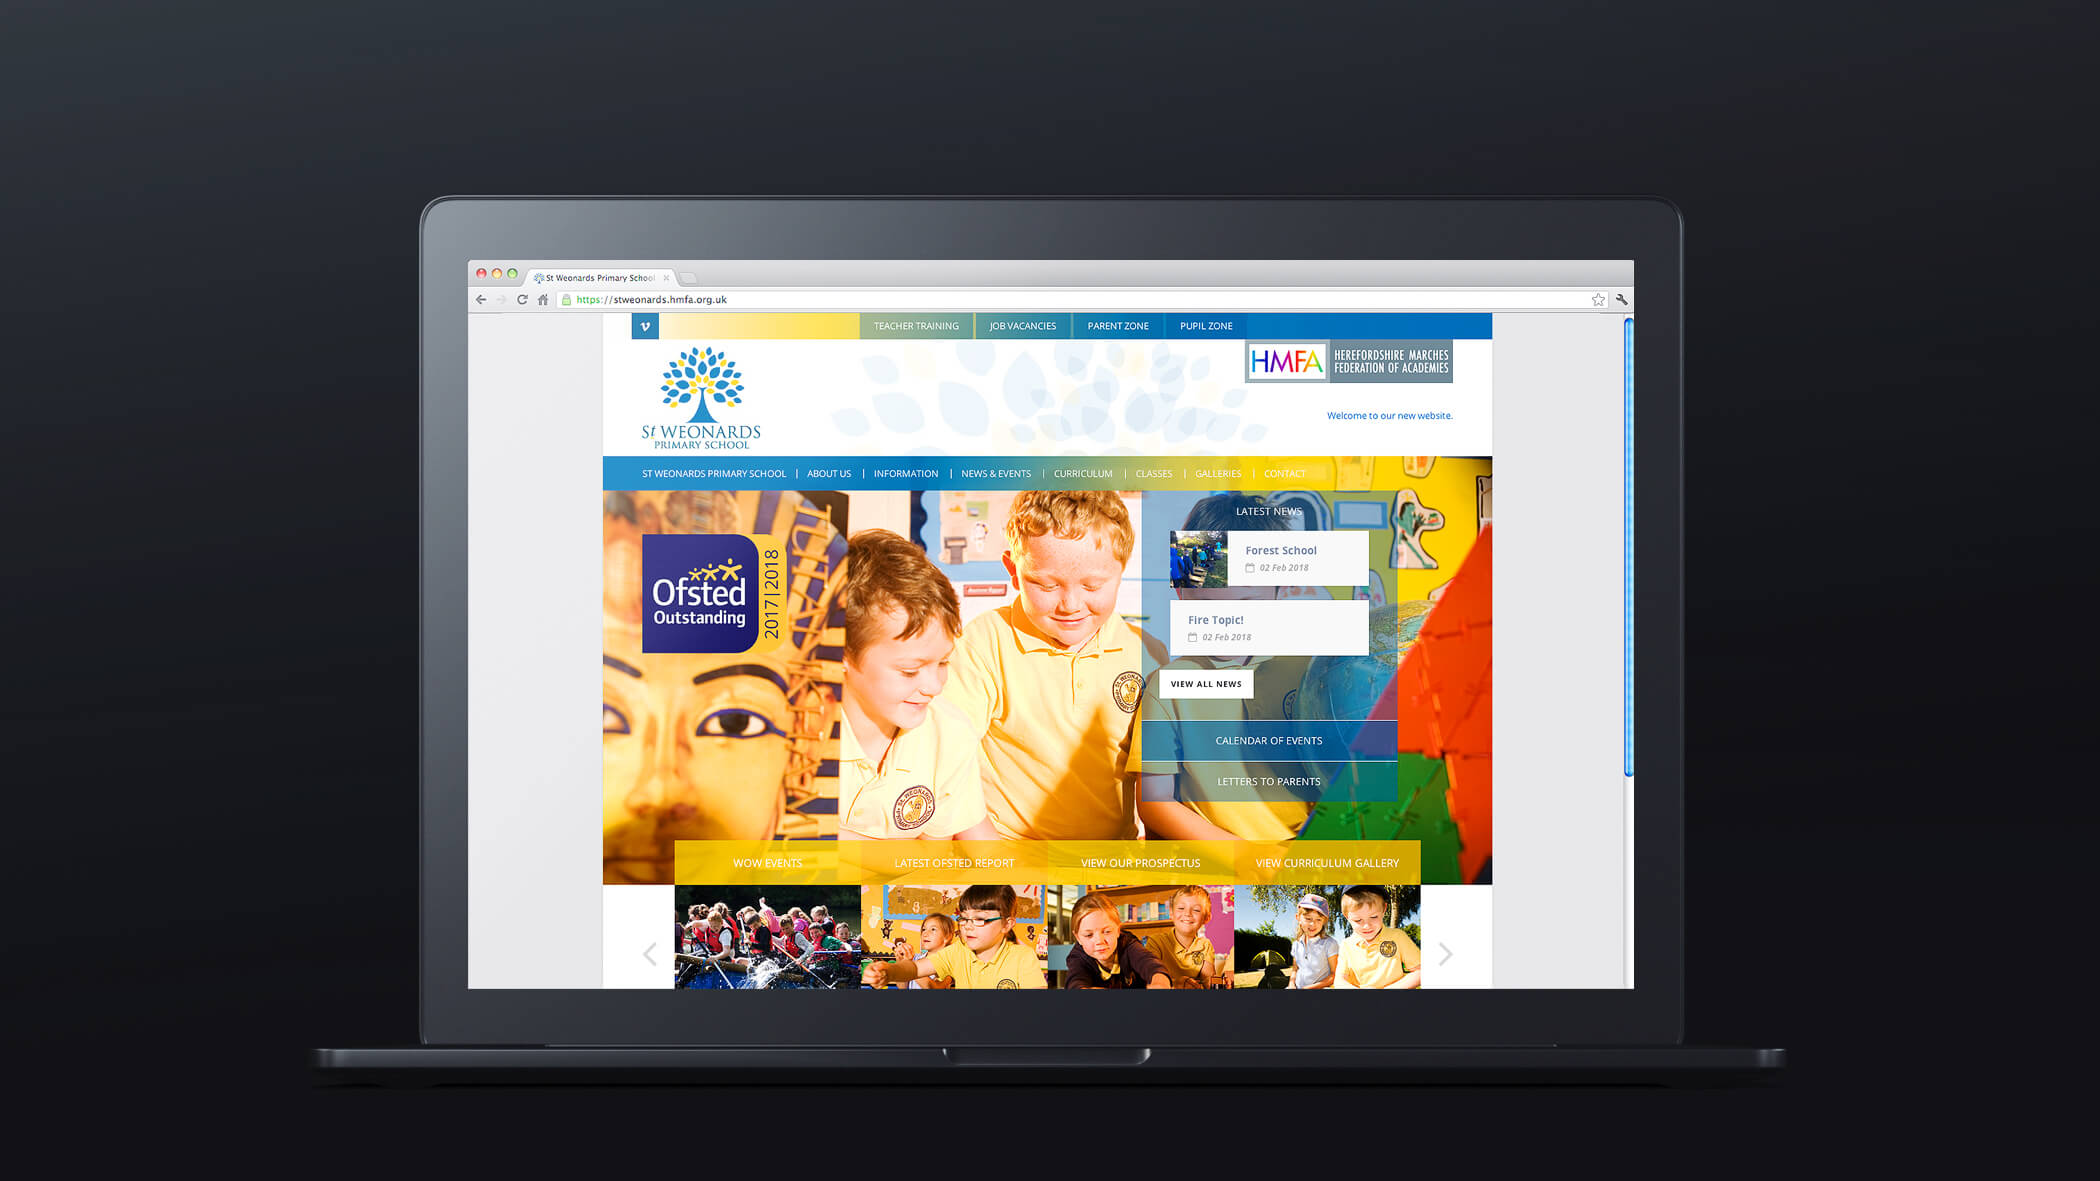 multi academy federation website homepage design showing school photography